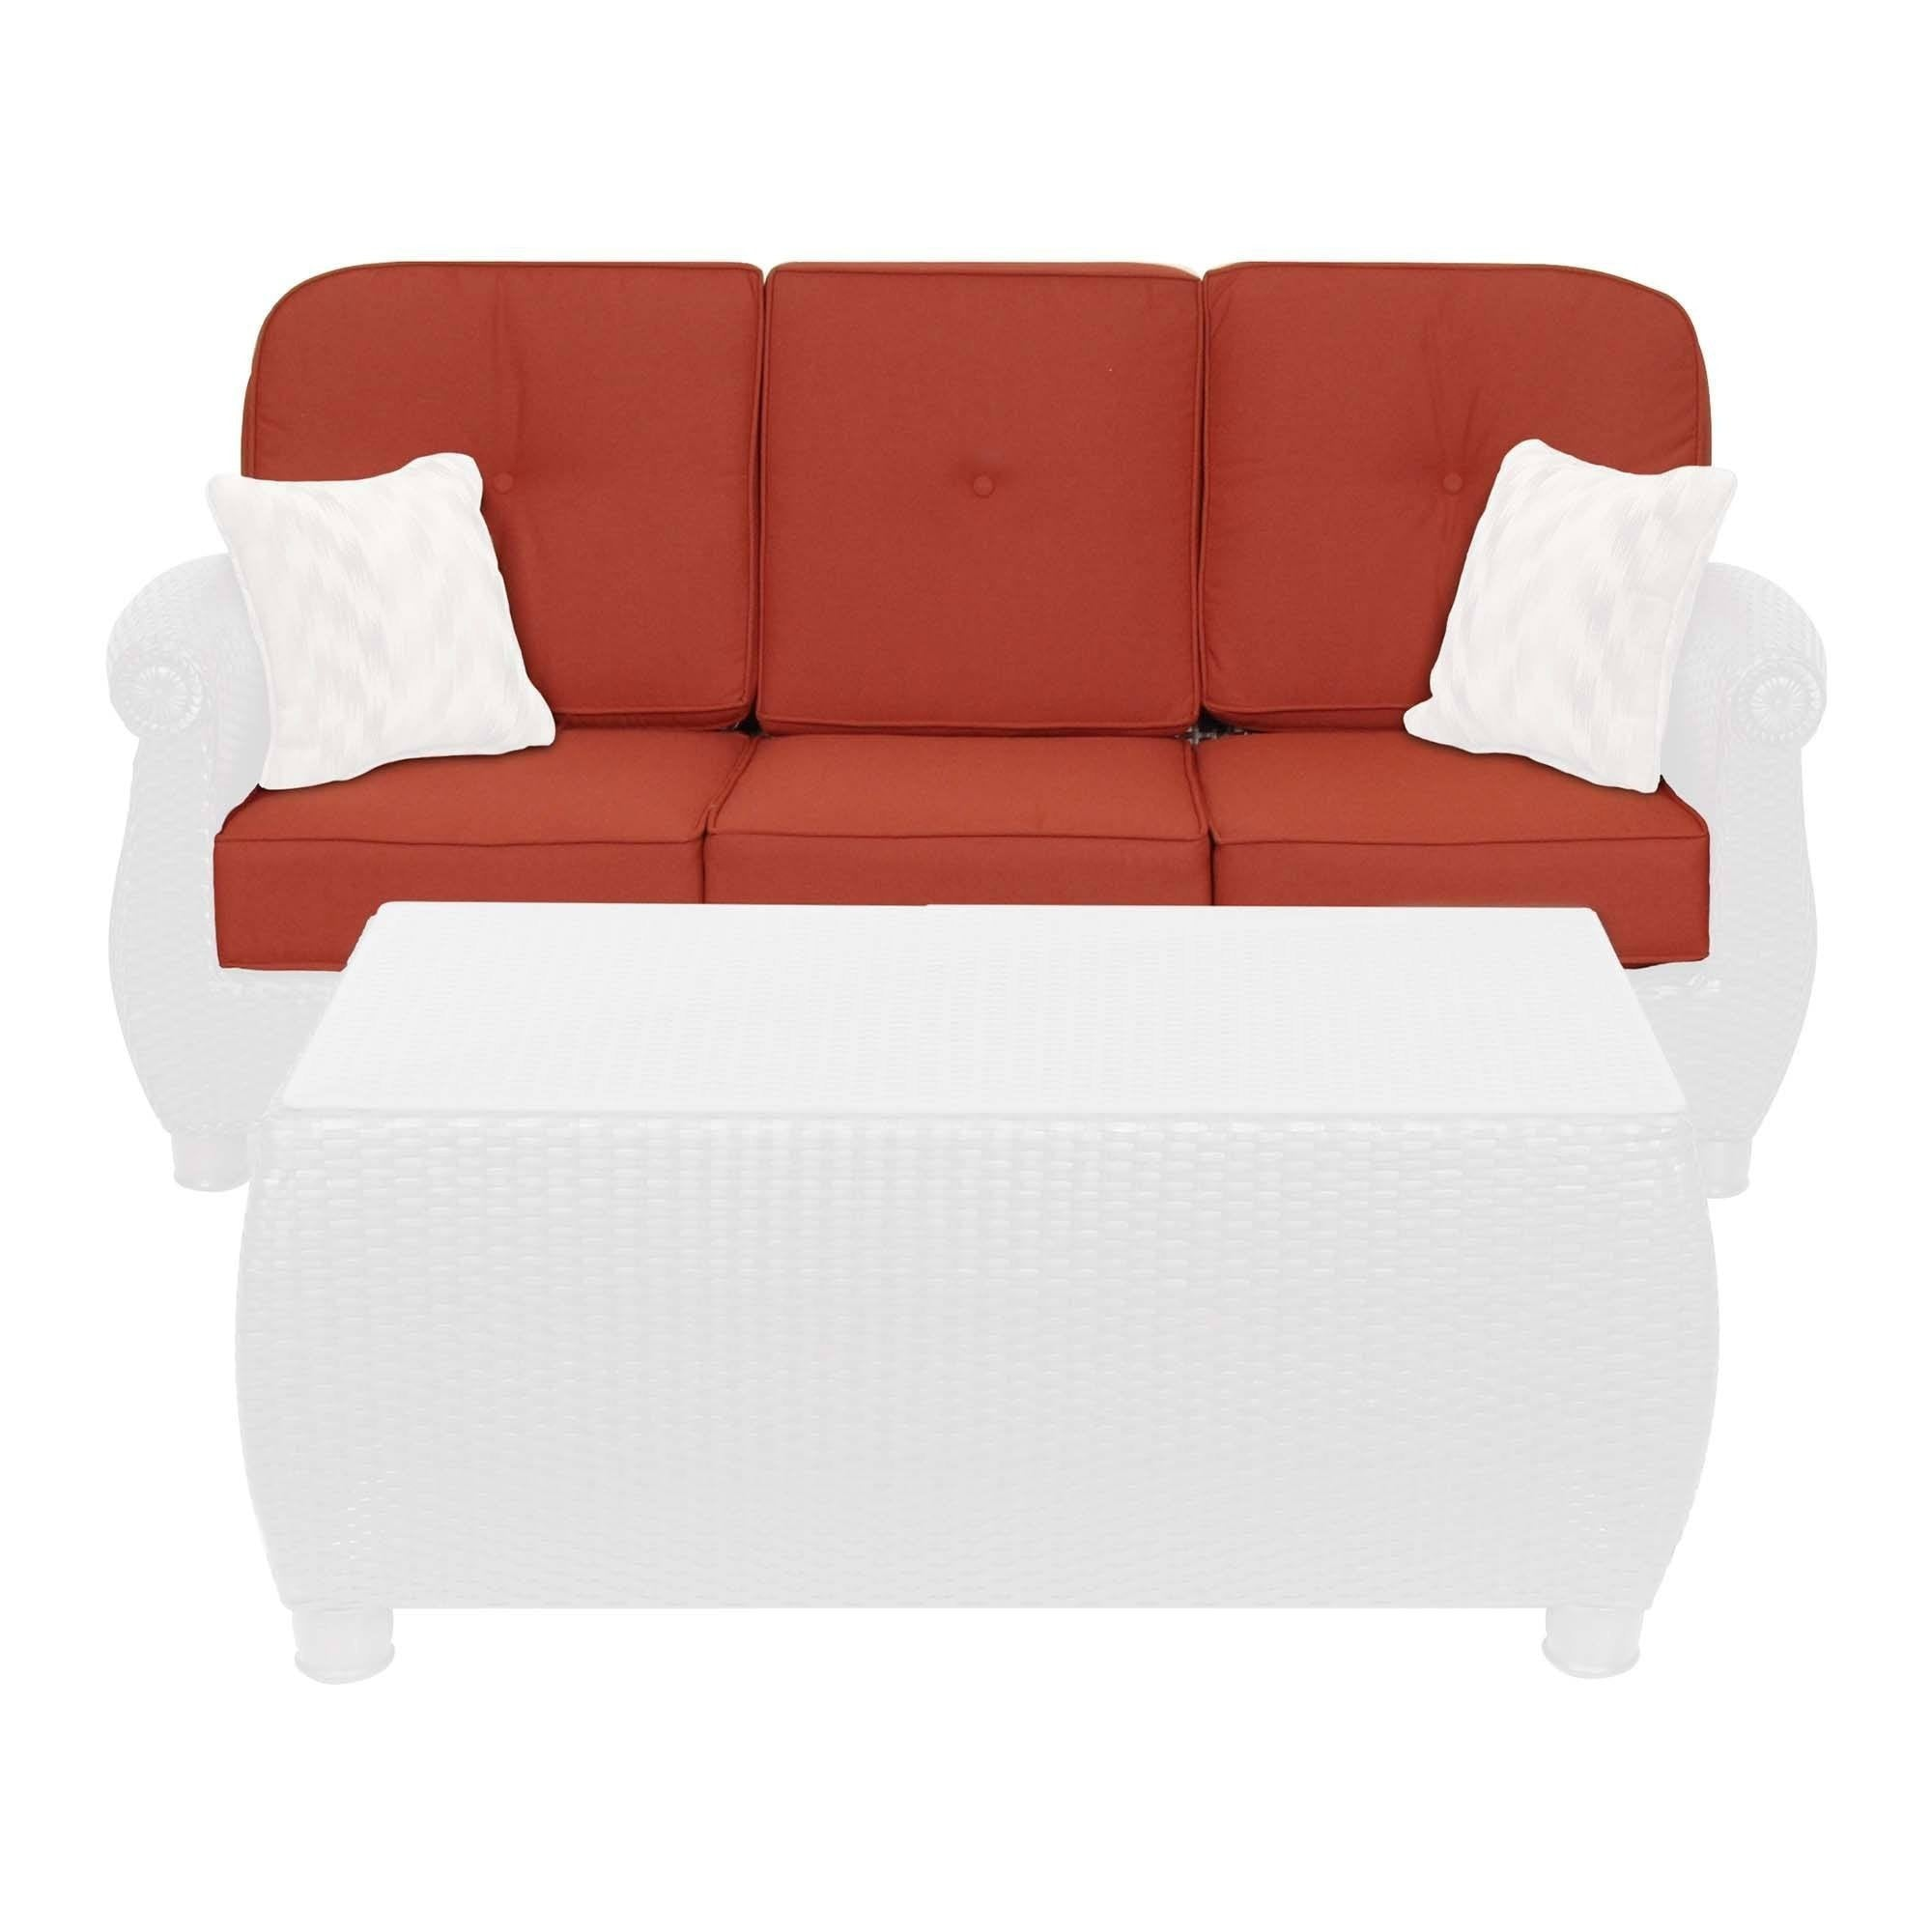 Replacement Cushions   Breckenridge Sofa Replacement Cushion Set